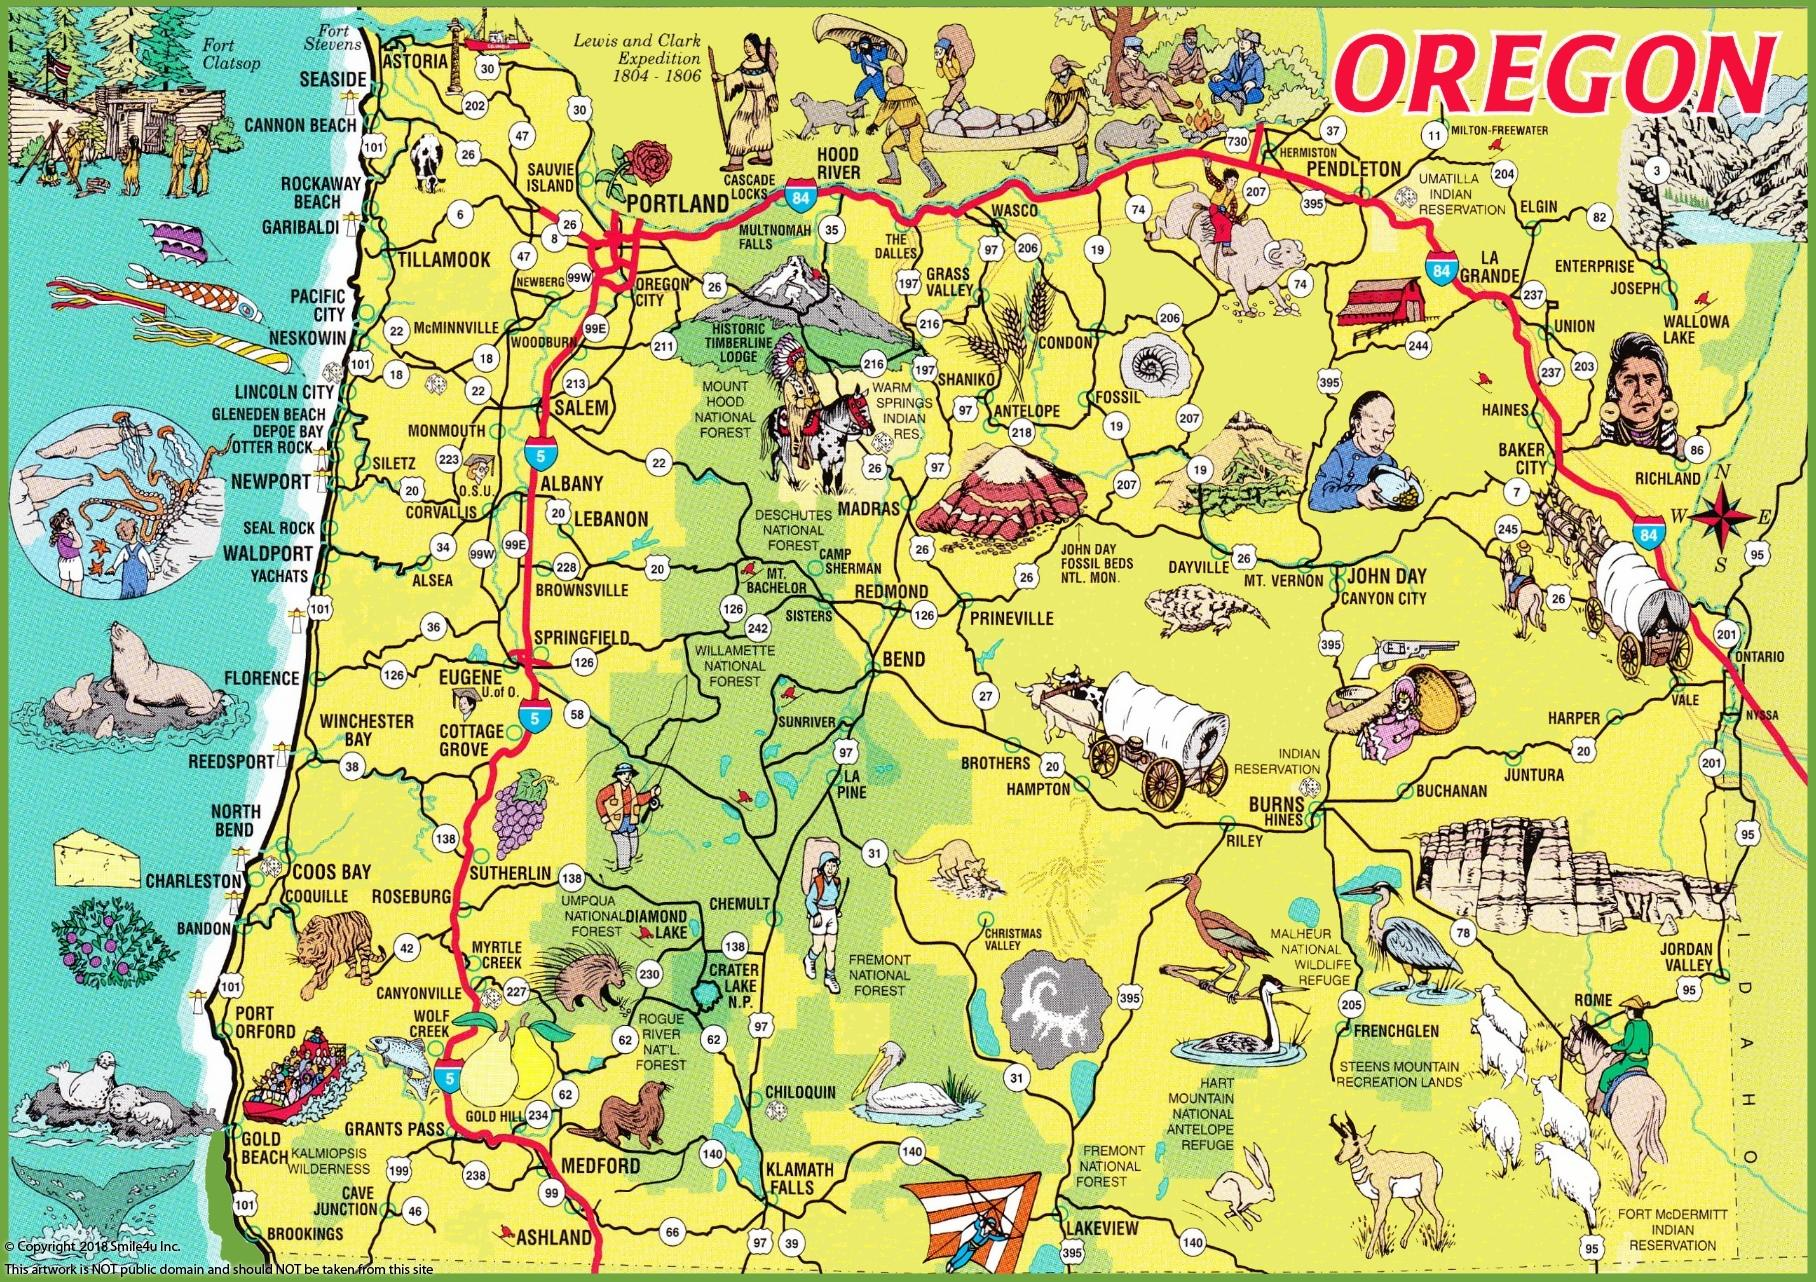 751357_watermarked_pictorial-travel-map-of-oregon.jpg